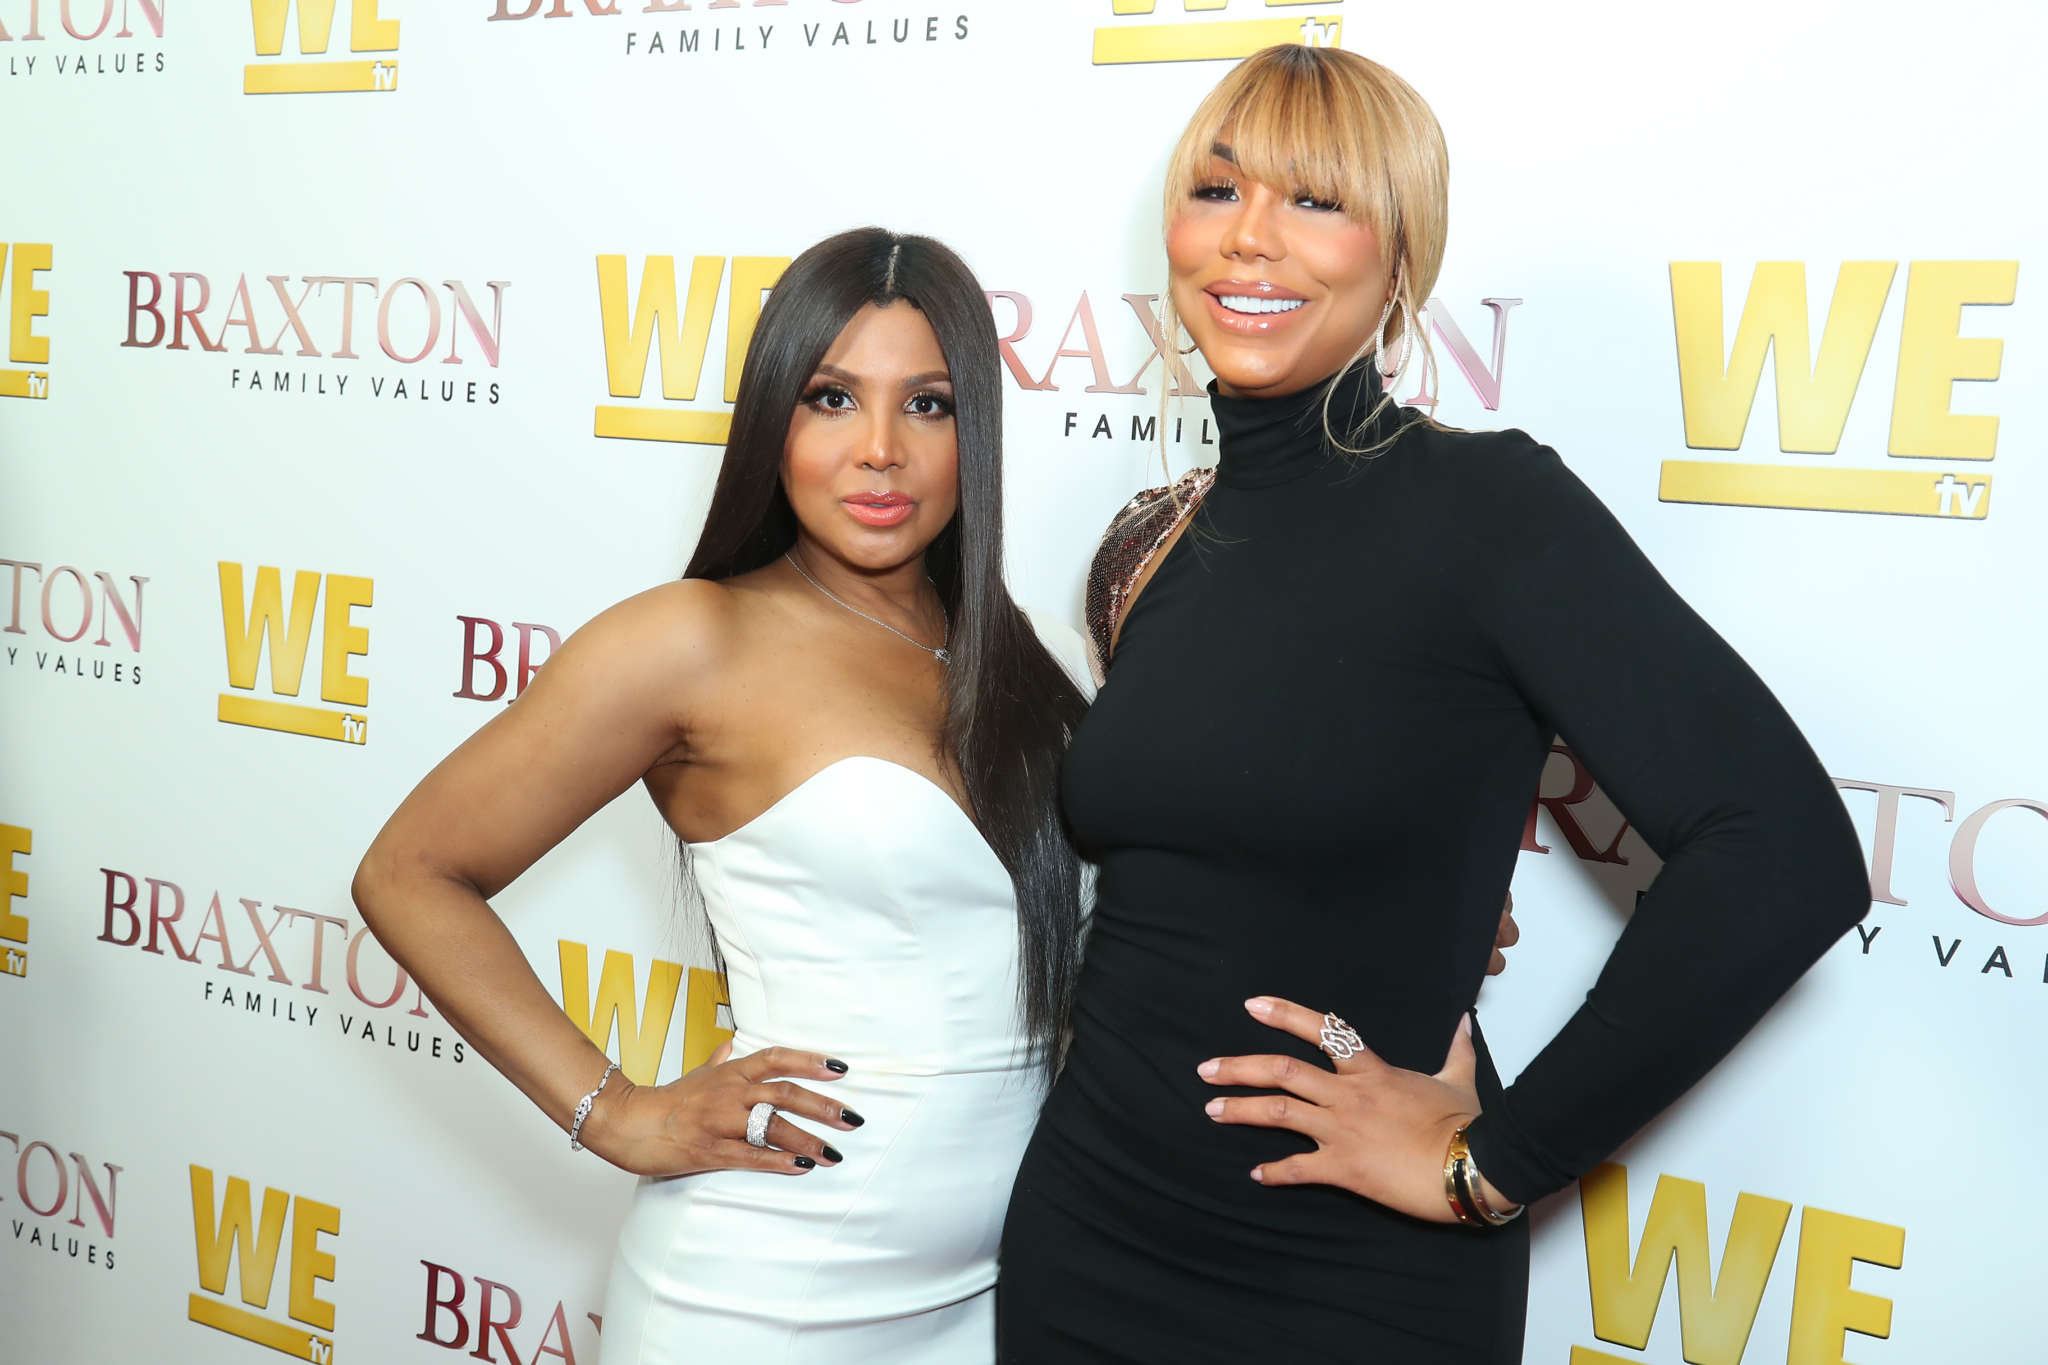 Toni Braxton Shades Sister Tamar Braxton For Her Birthday - Check Out The Reason That Has Fans Talking